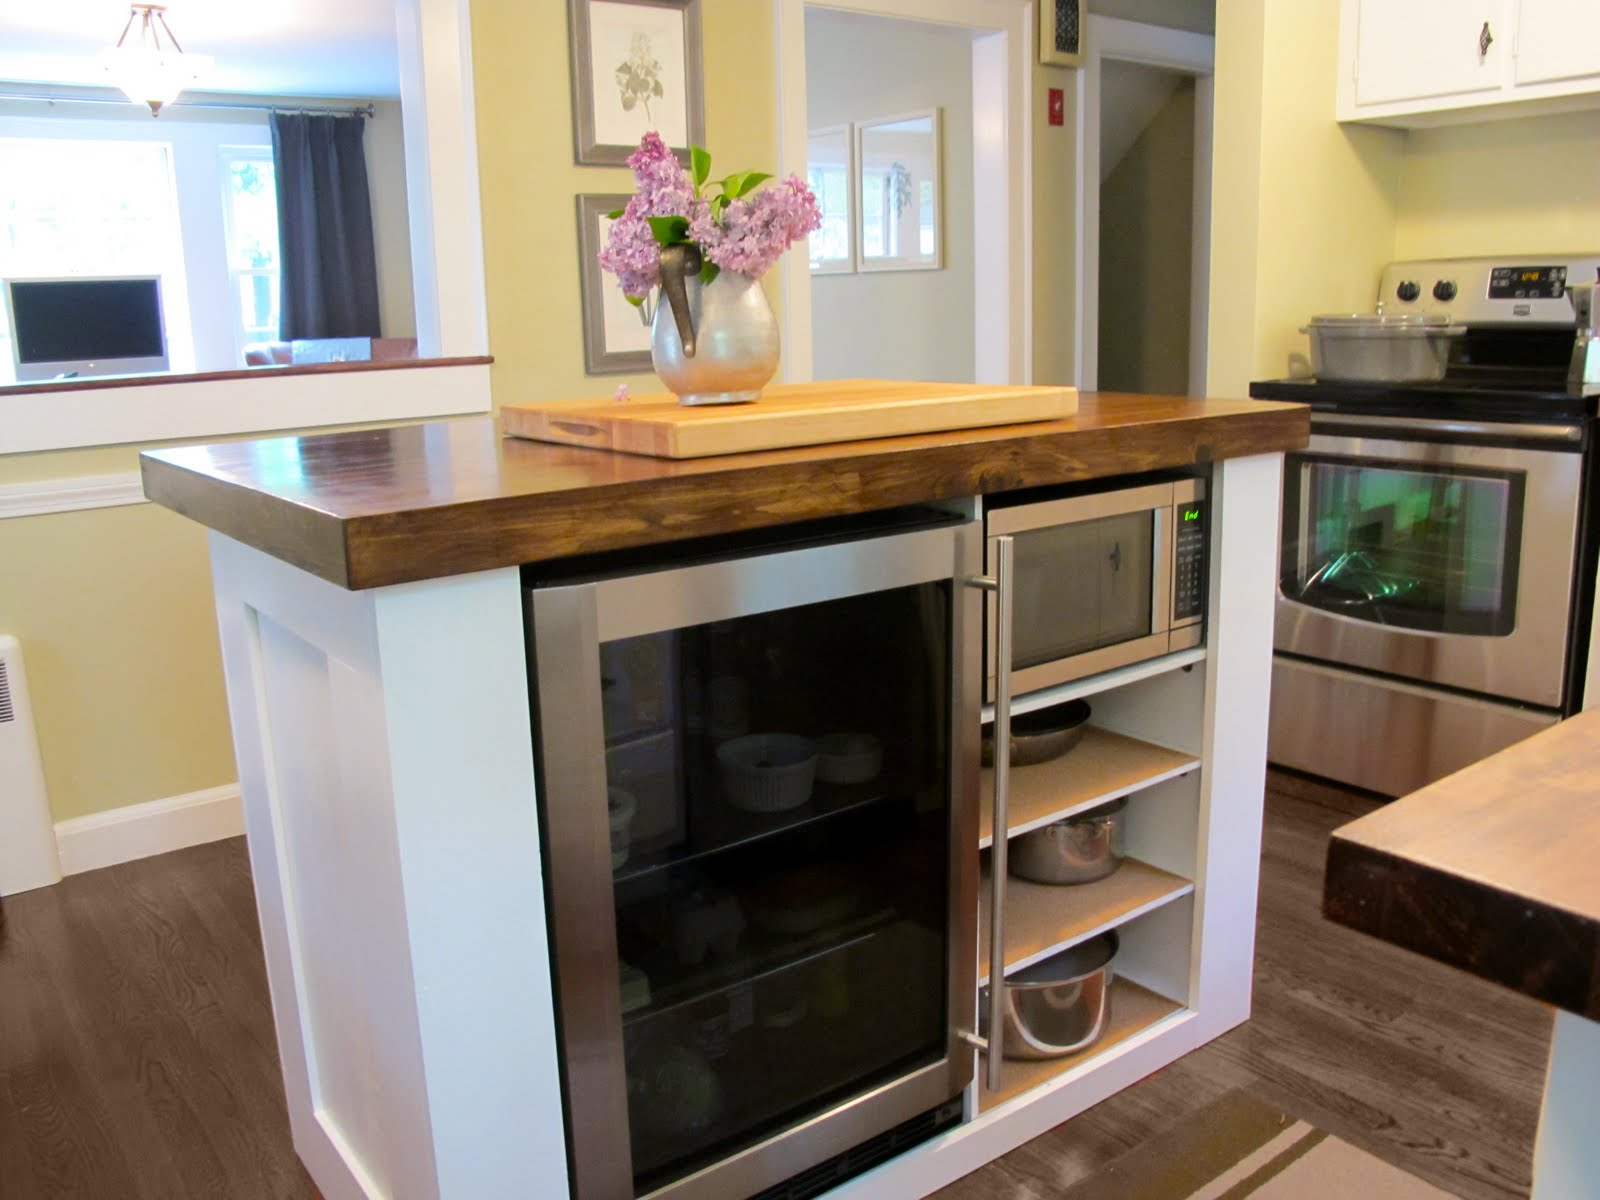 Diy Kitchen Island kitchen island ideas & how to make a great kitchen island